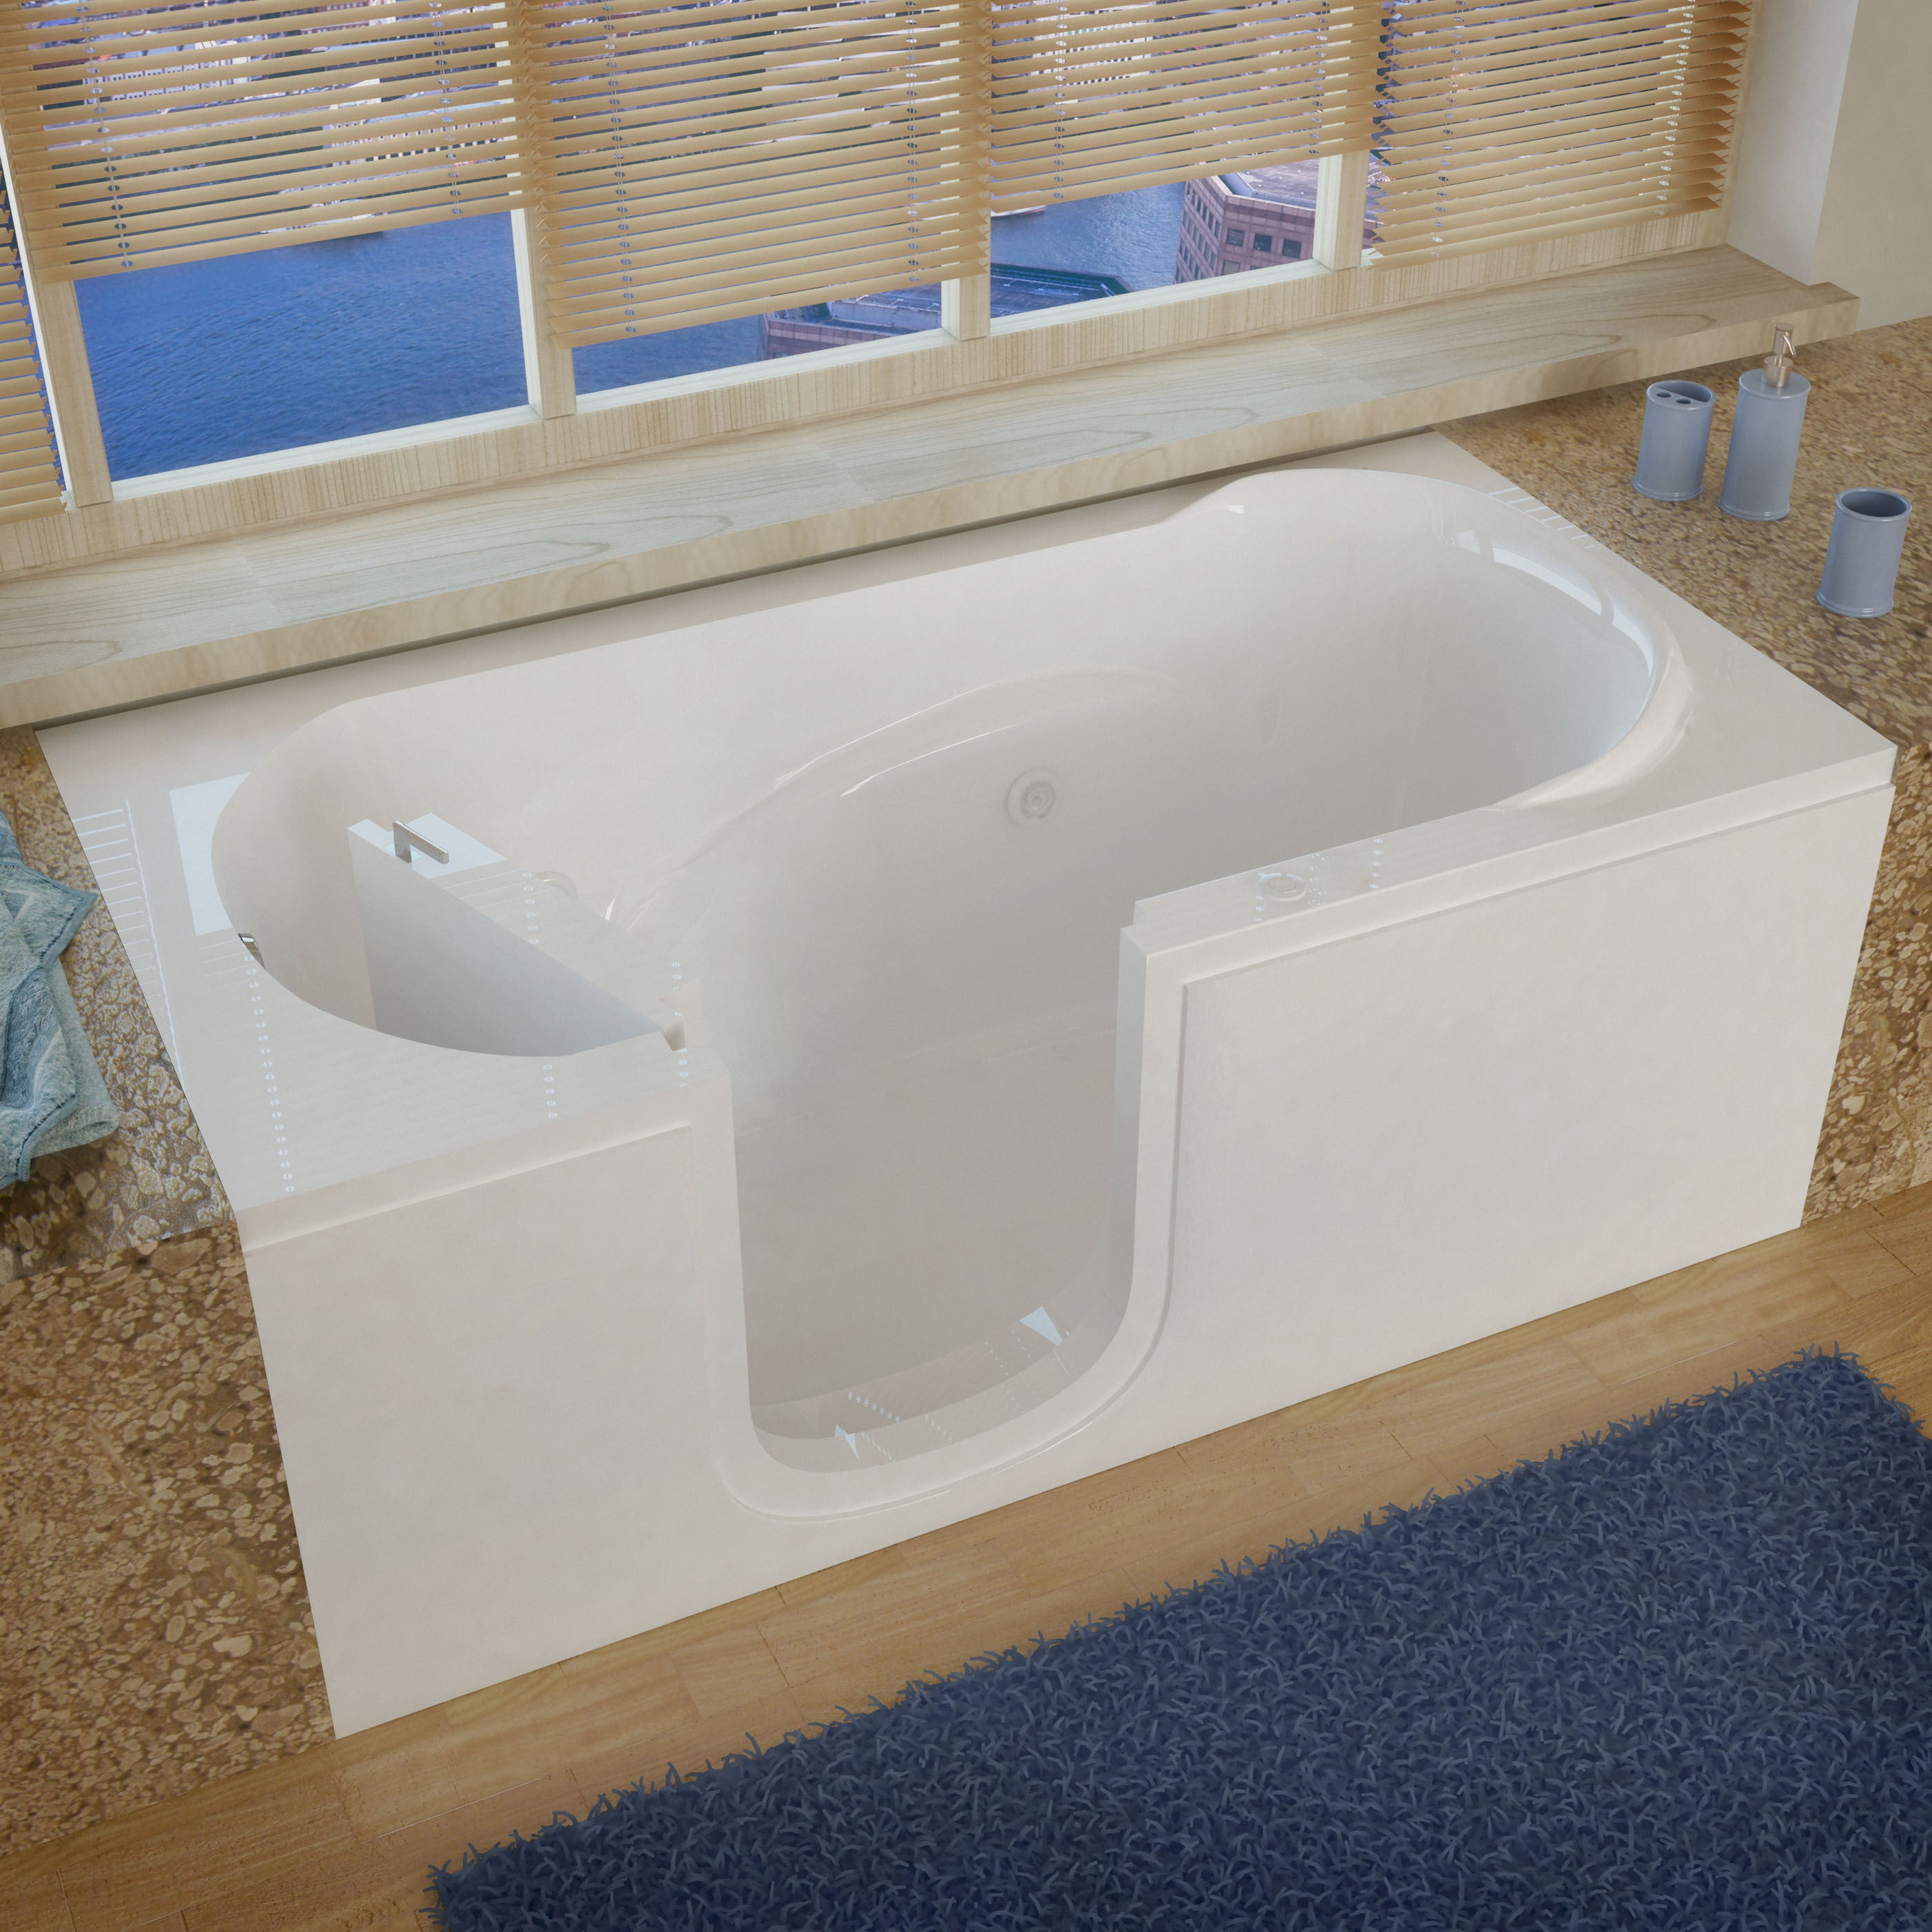 Shop MediTub Step-In 30x60-inch Left Drain White Whirlpool Jetted ...